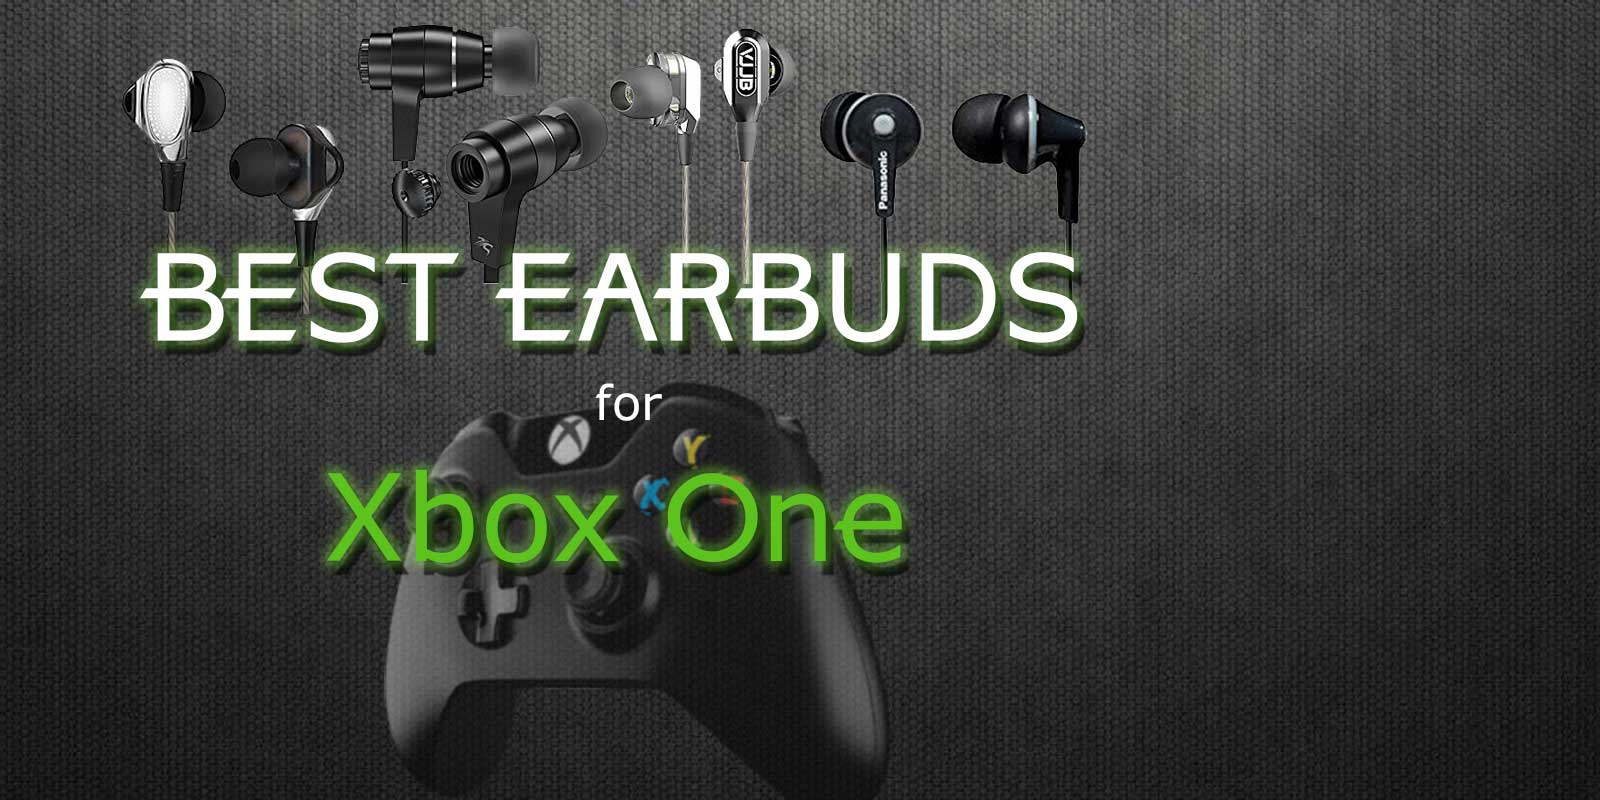 Best earbuds for Xbox One in 2019